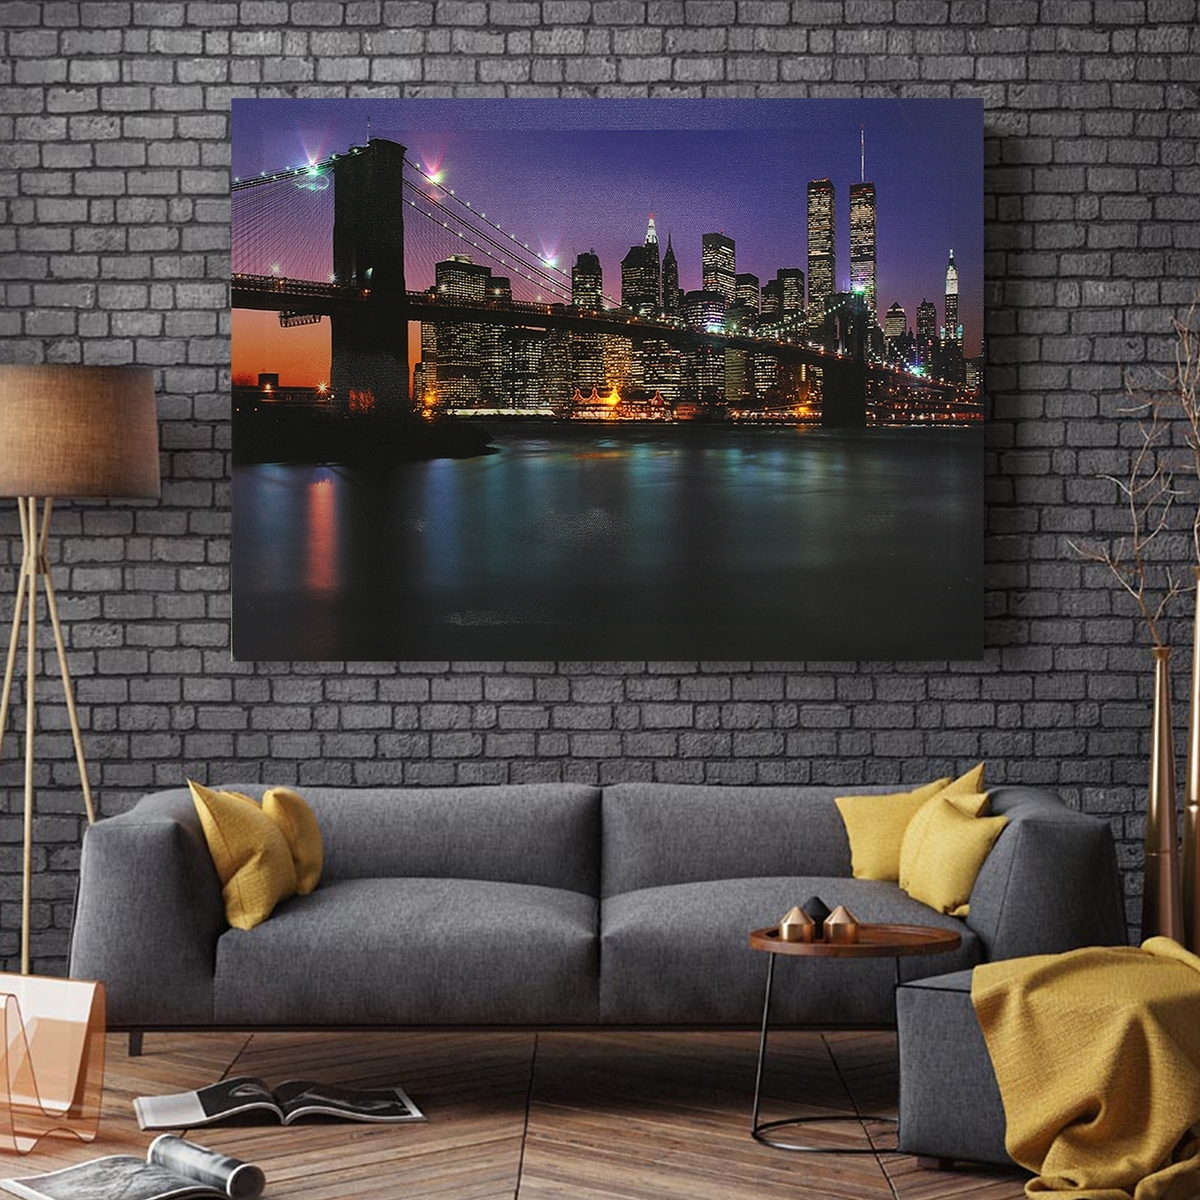 Bridge Led Light Up Canvas Painting Picture Wall Hanging, Light Up pertaining to Light Up Wall Art (Image 3 of 20)